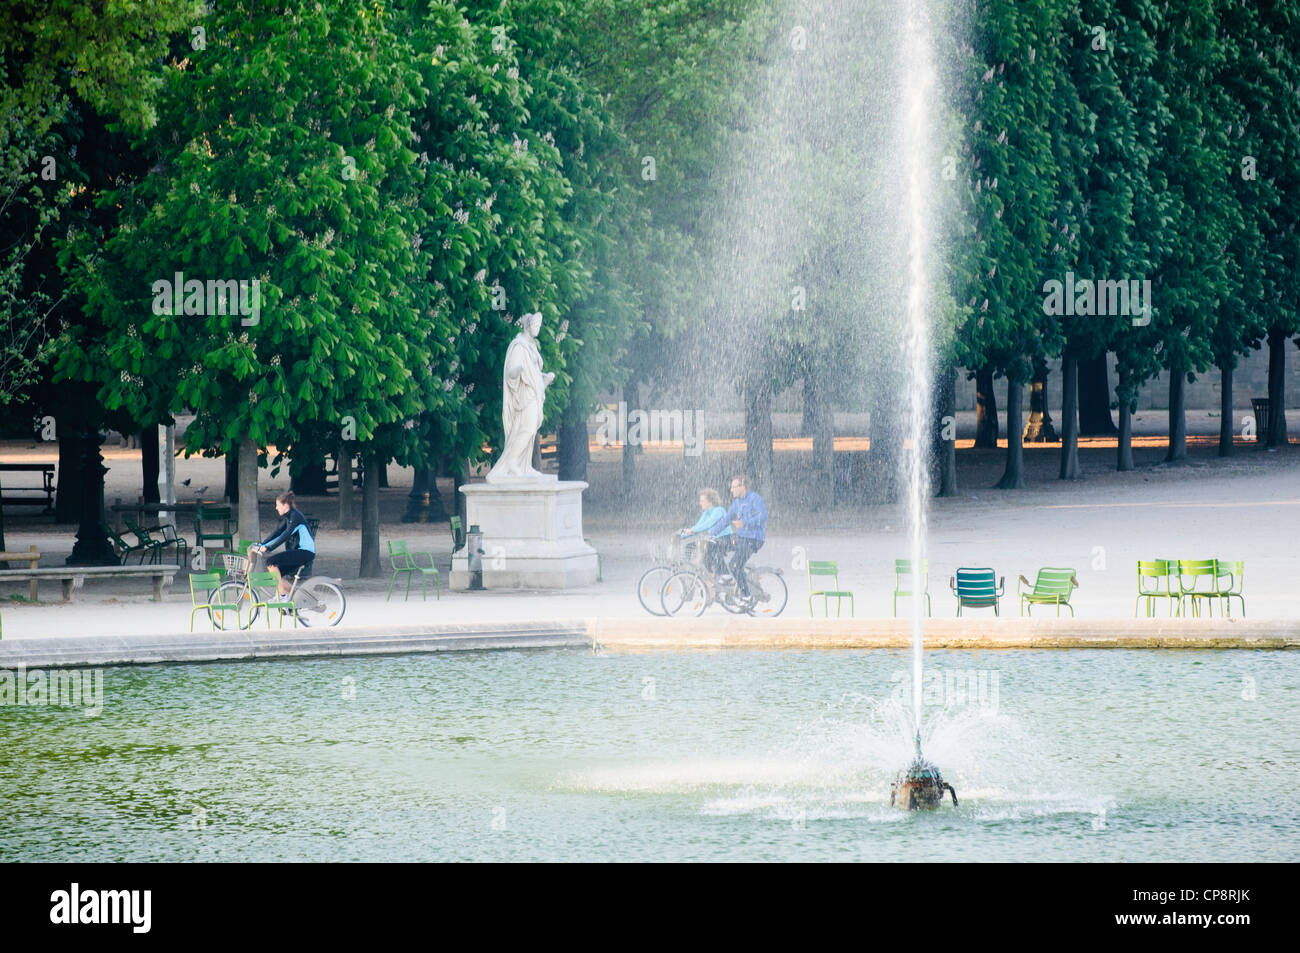 Family riding rental bicycles in the early morning, Jardin des Tuileries, Paris, France - Stock Image